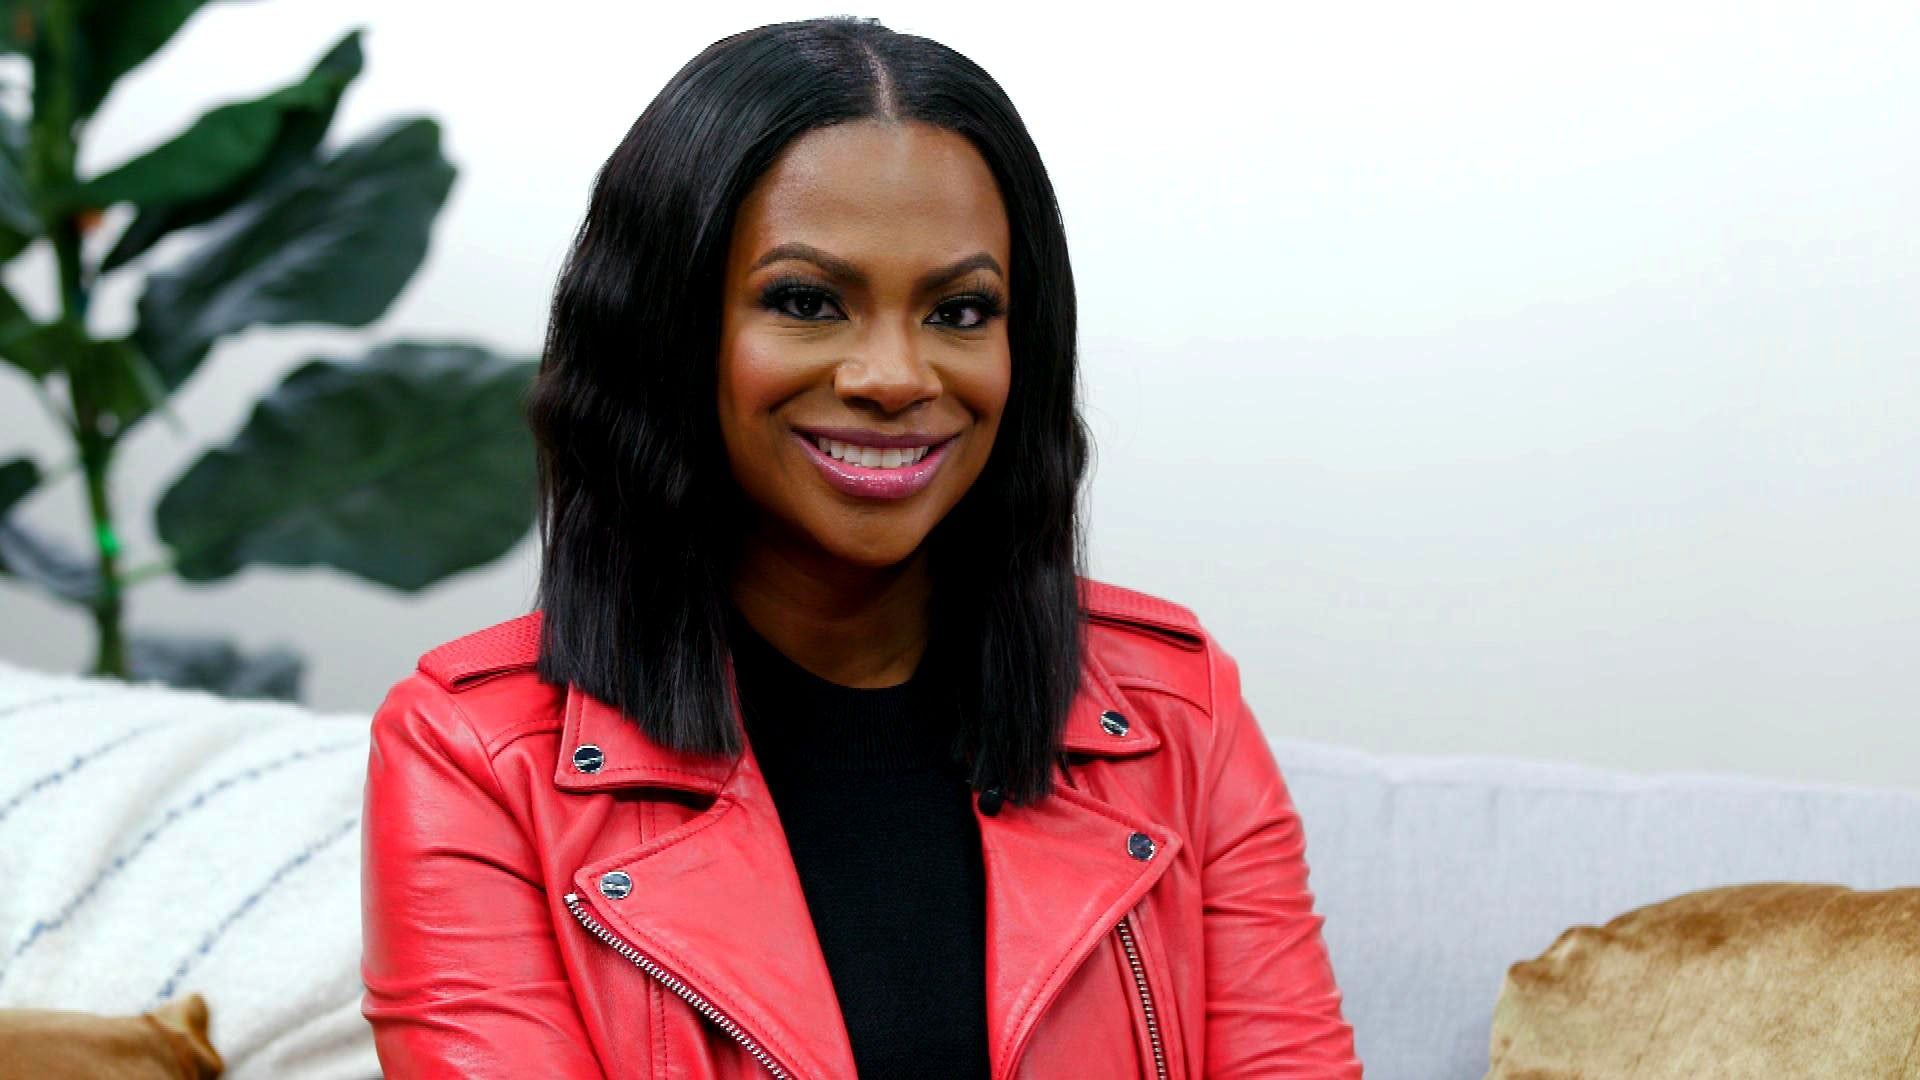 Kandi Burruss Has A Message For People With 'Side Hustles'